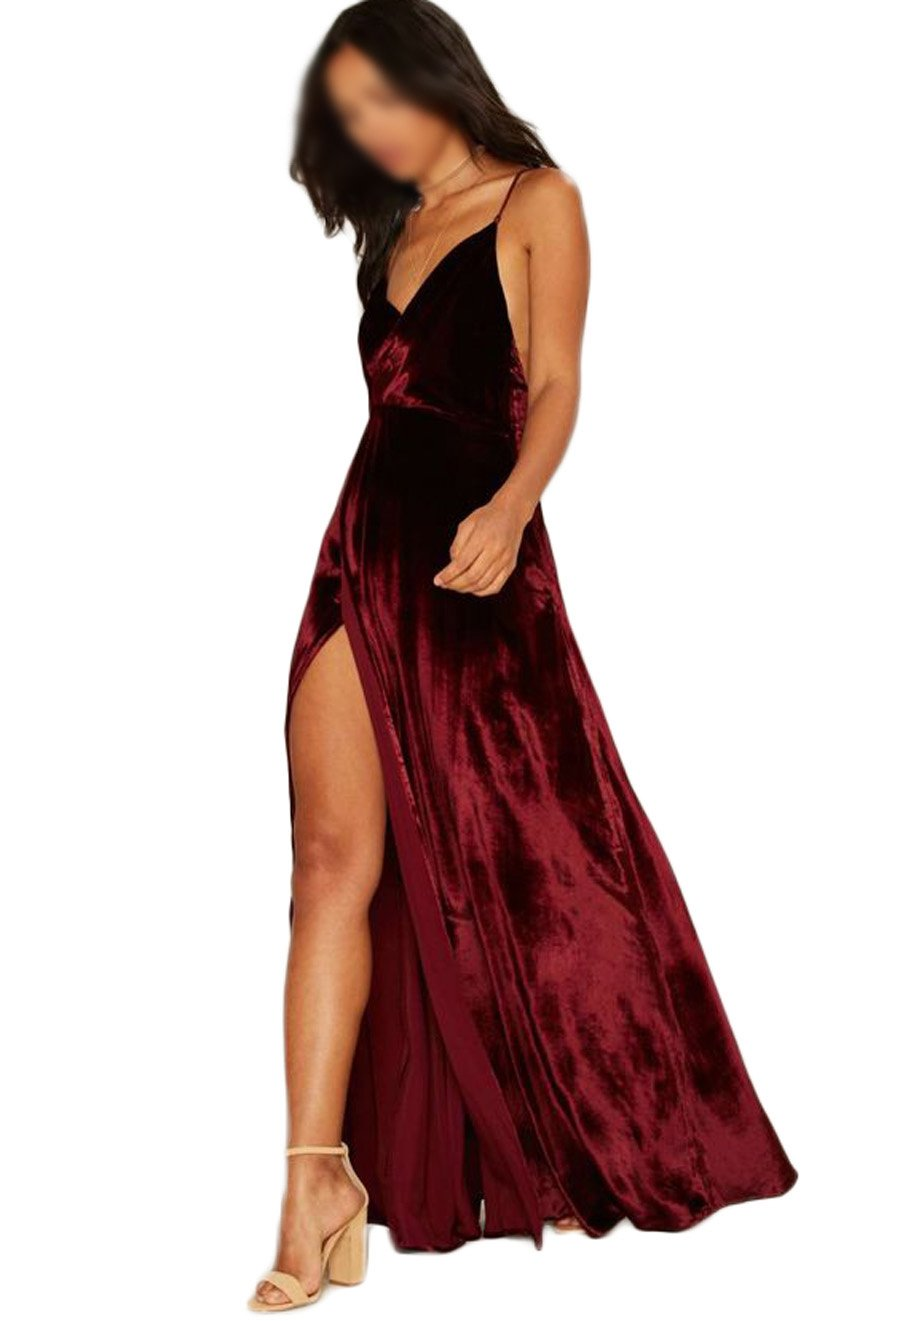 Amazon.com: Chupeng Womens Backless Prom Dresses V Neck Straps Velvet A Line Slit Evening Dress: Clothing